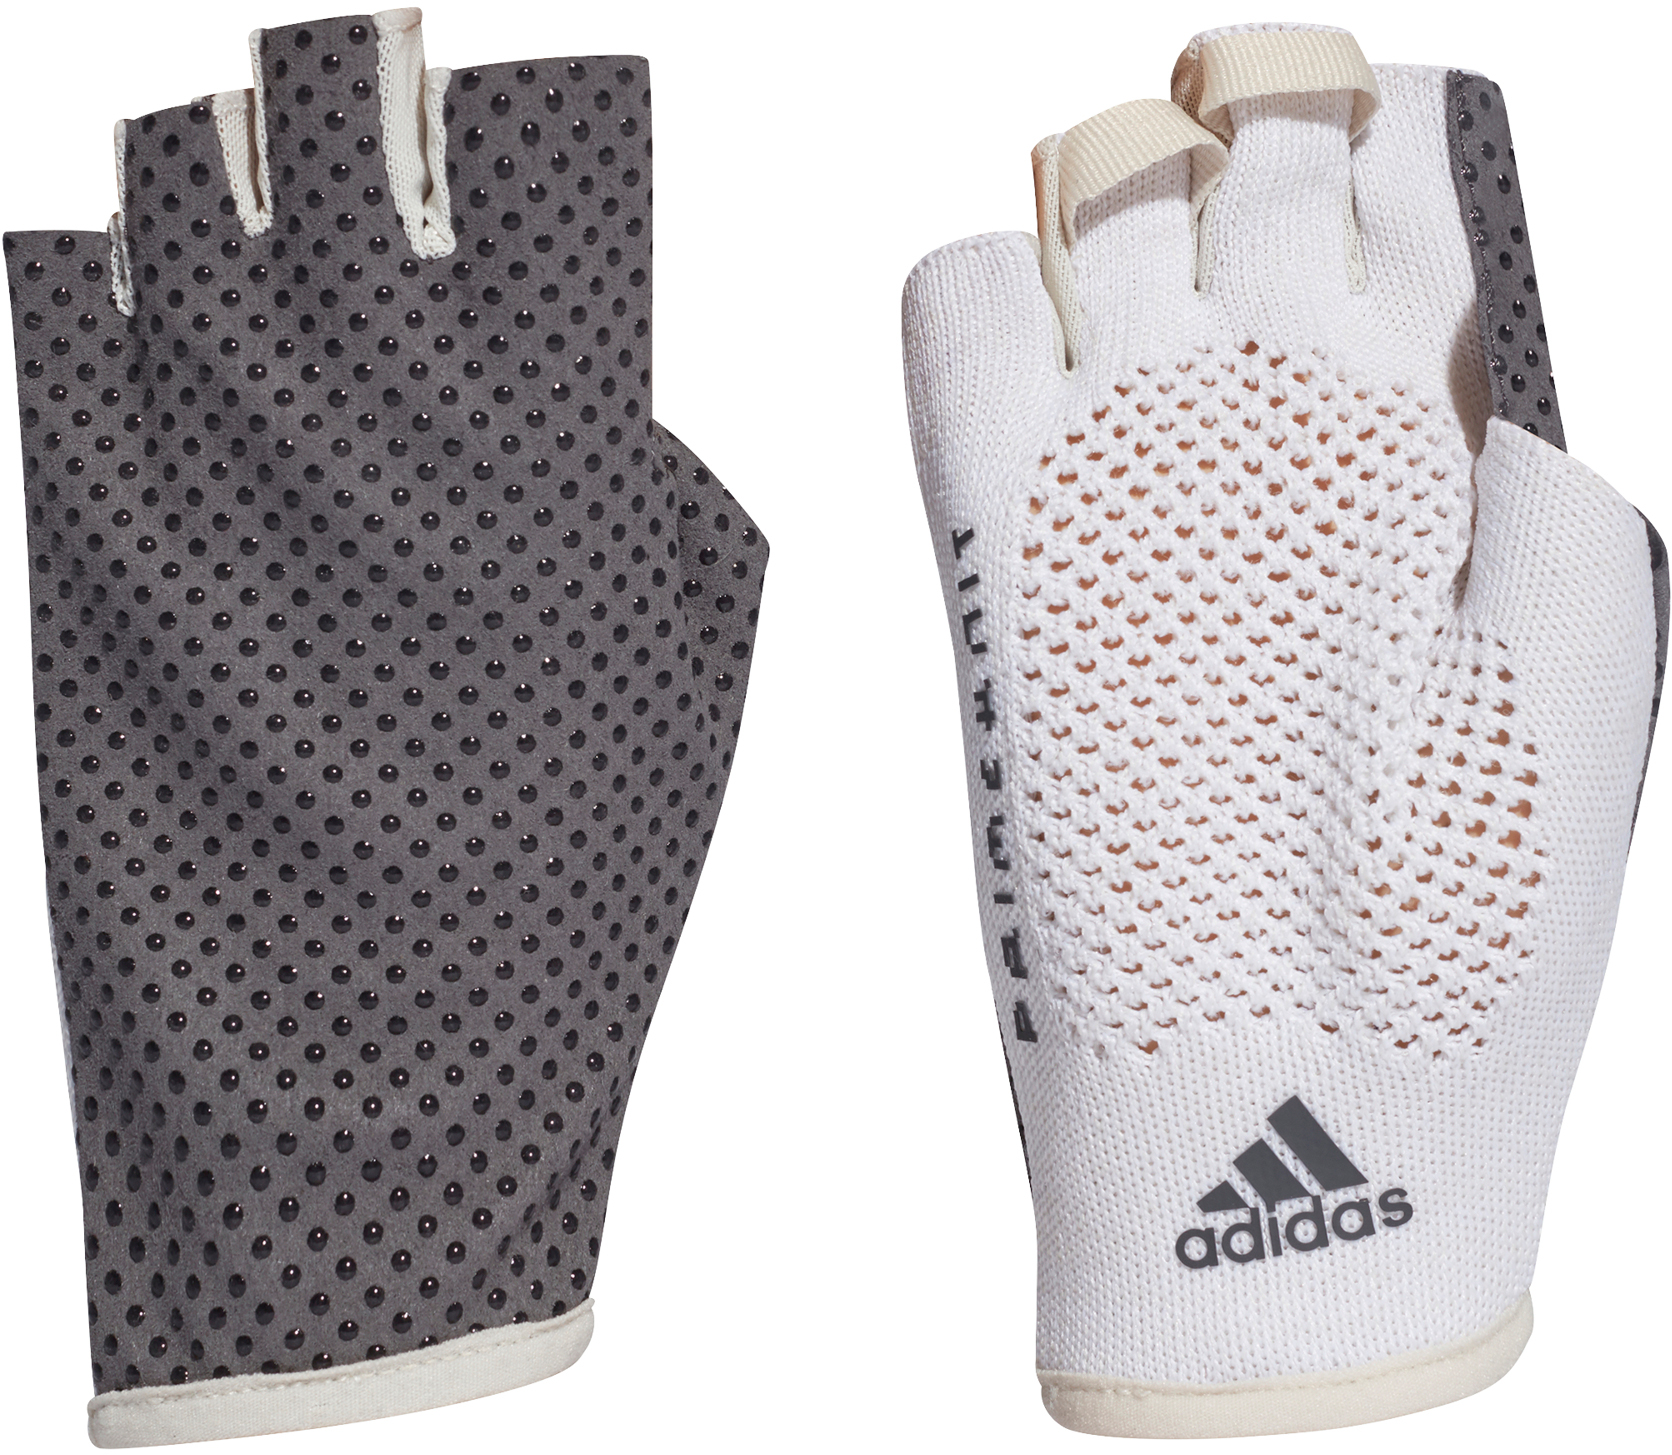 adidas Primeknit Climacool Glove | Gloves